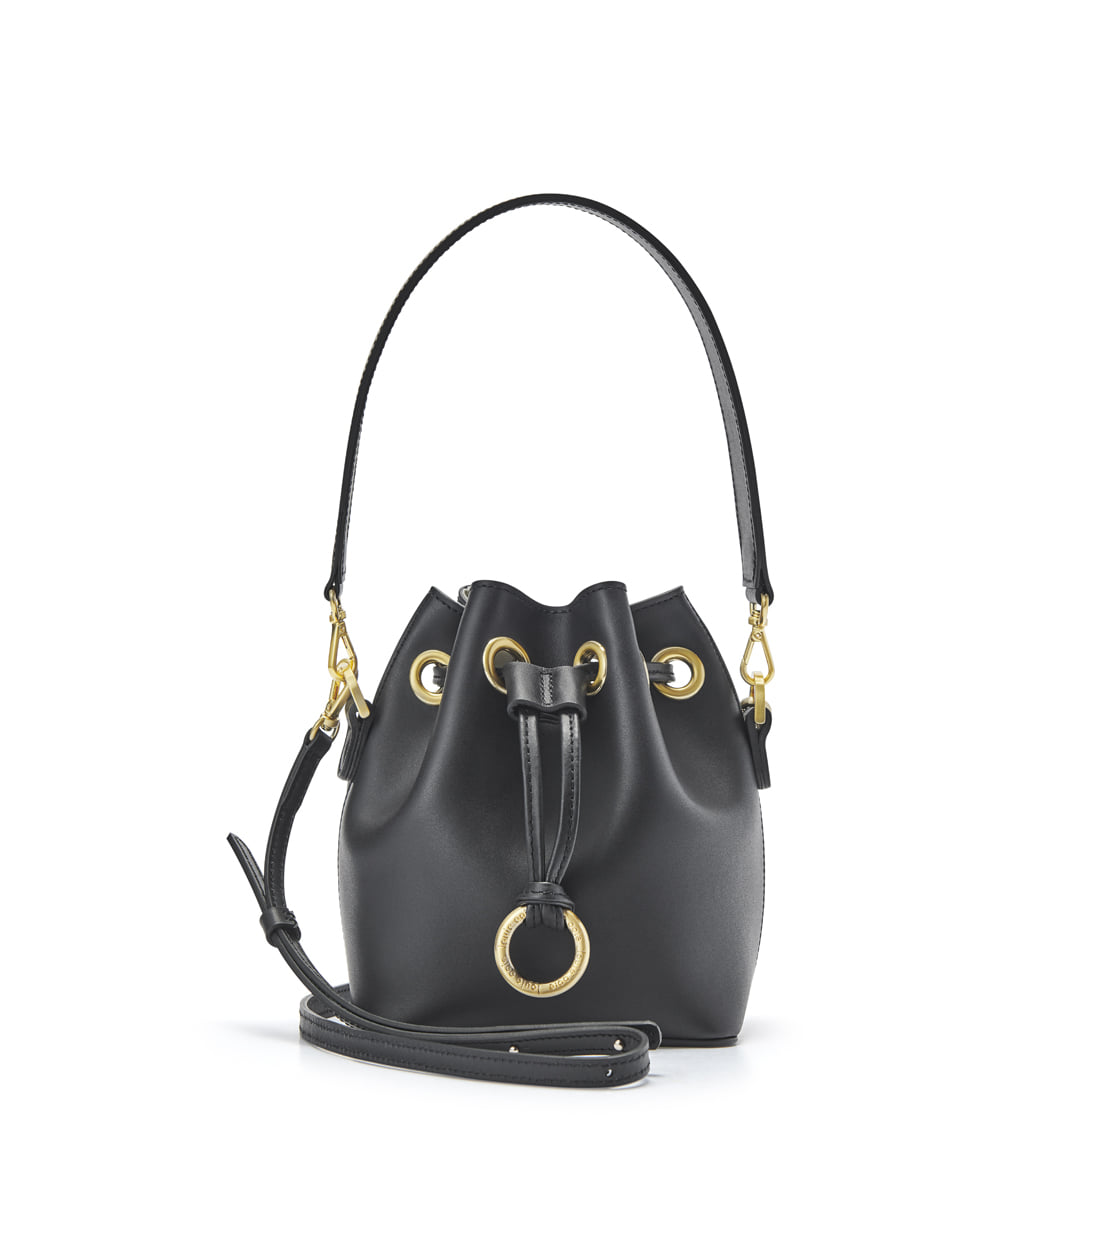 jane bag mini - black [refurb 50%]